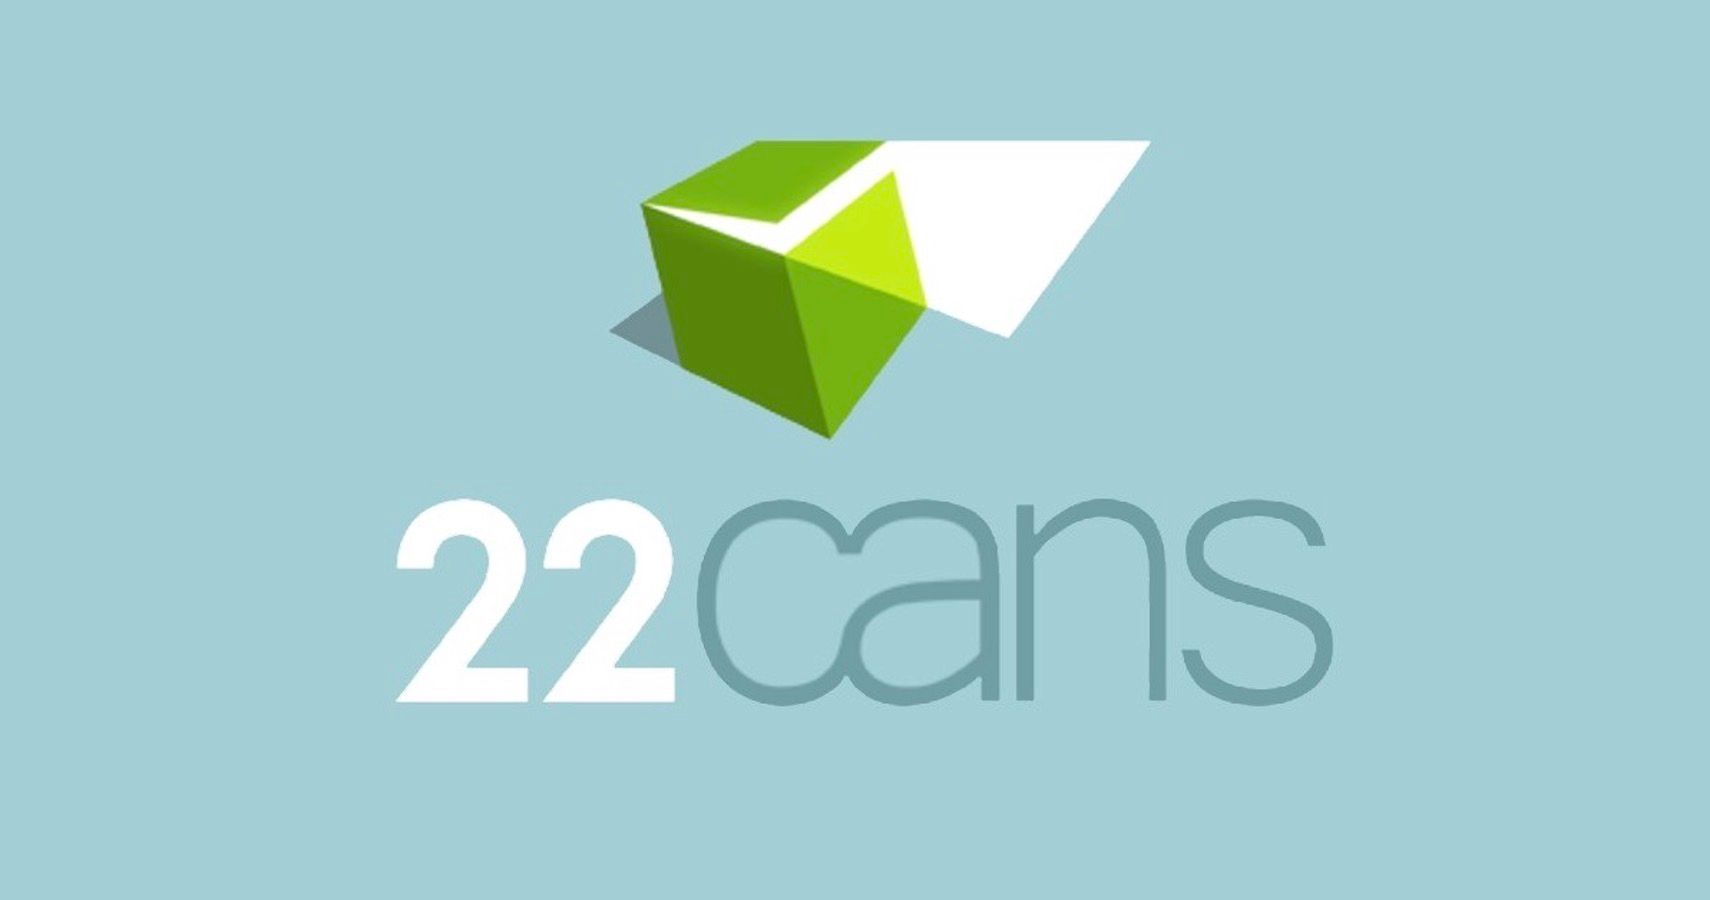 Peter Molyneux's Studio, 22Cans, Suffers A Round Of Layoffs